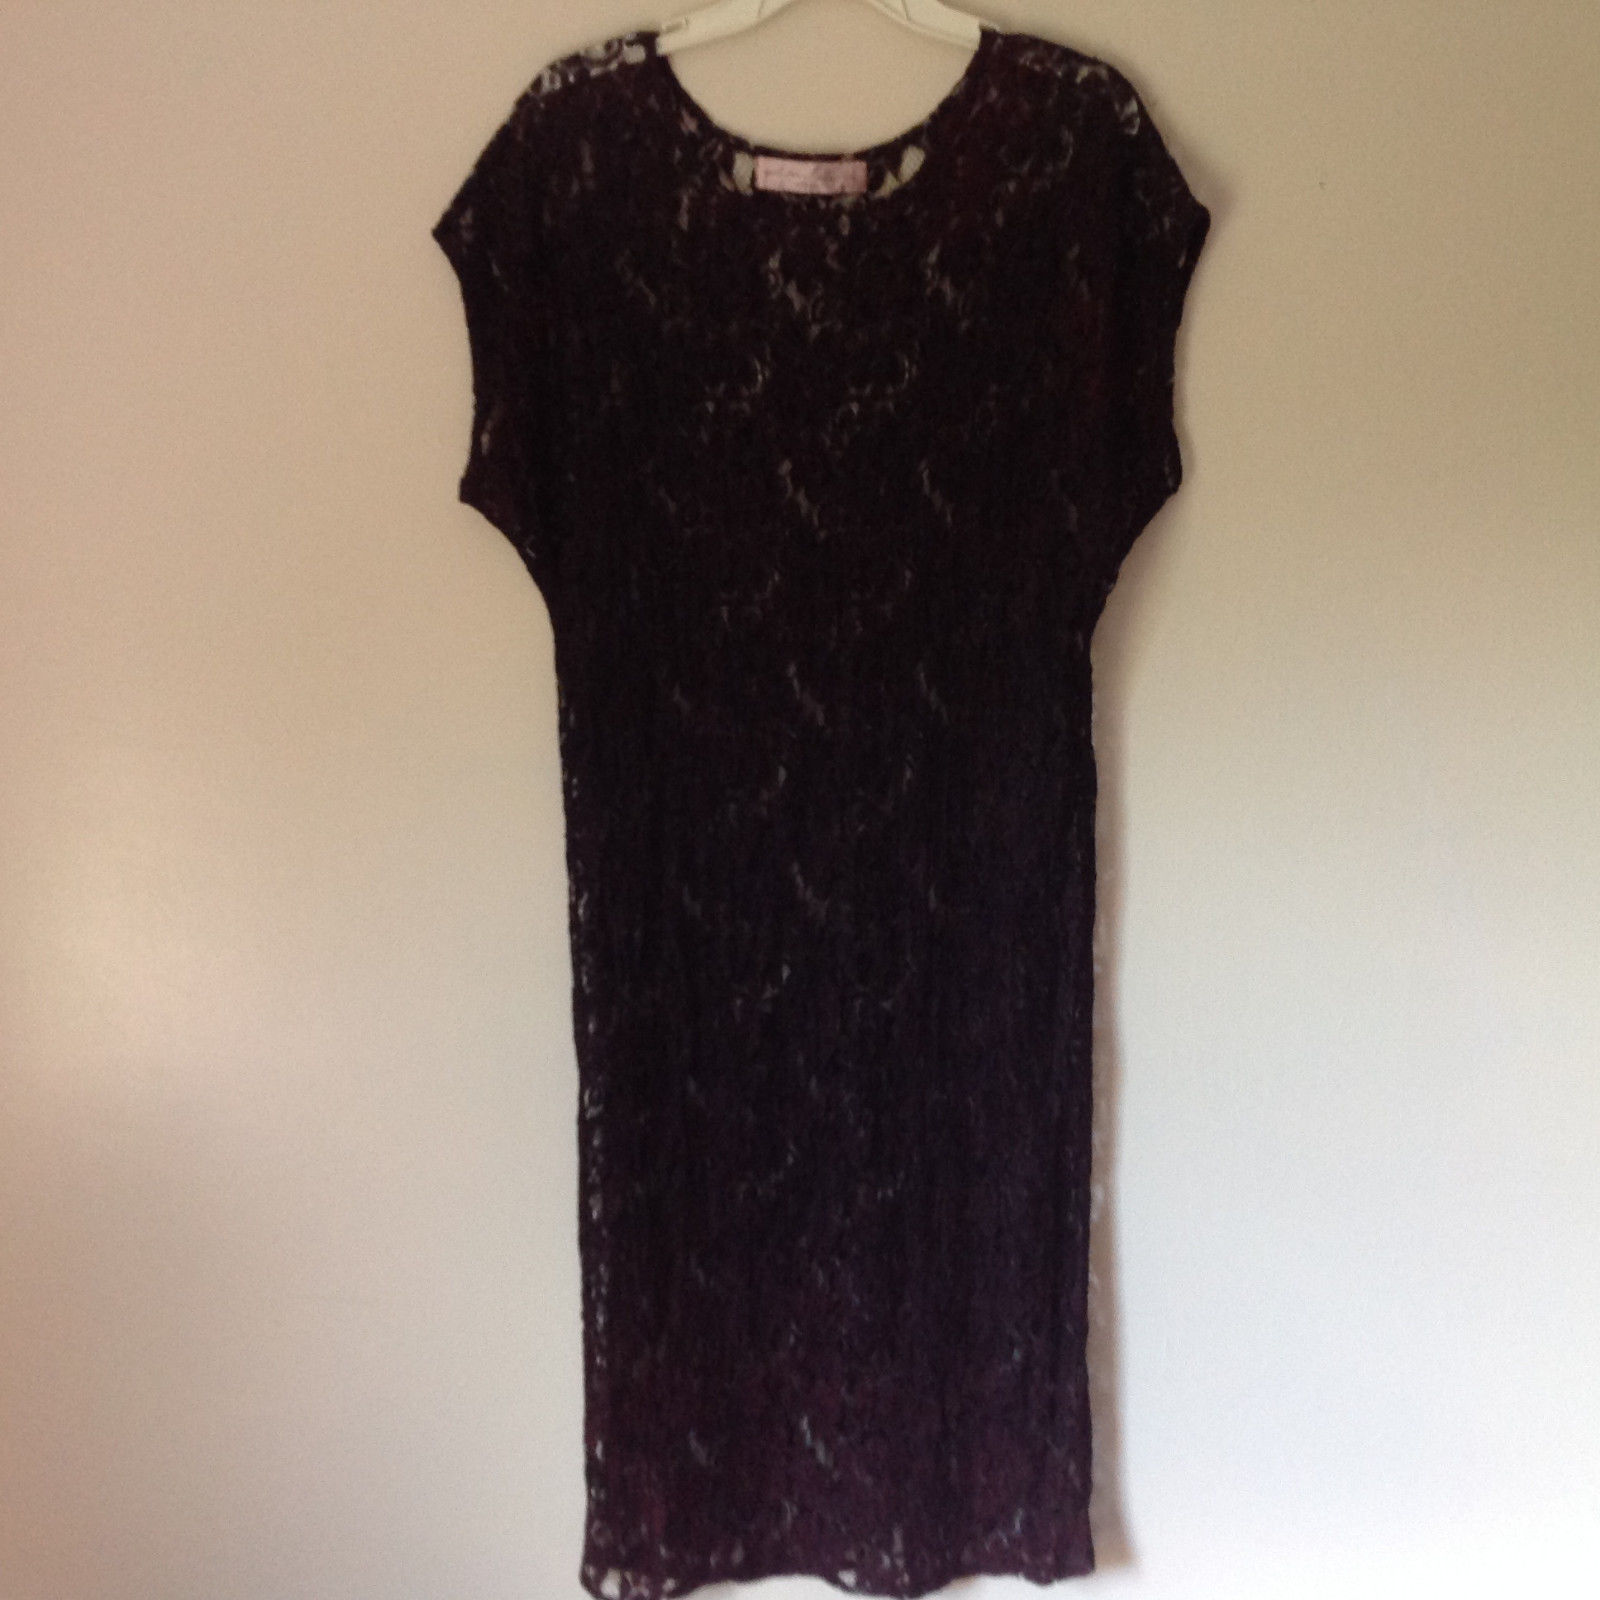 Purple Black See Through Short Sleeve Dress by Elin Cosyo California No Size Tag